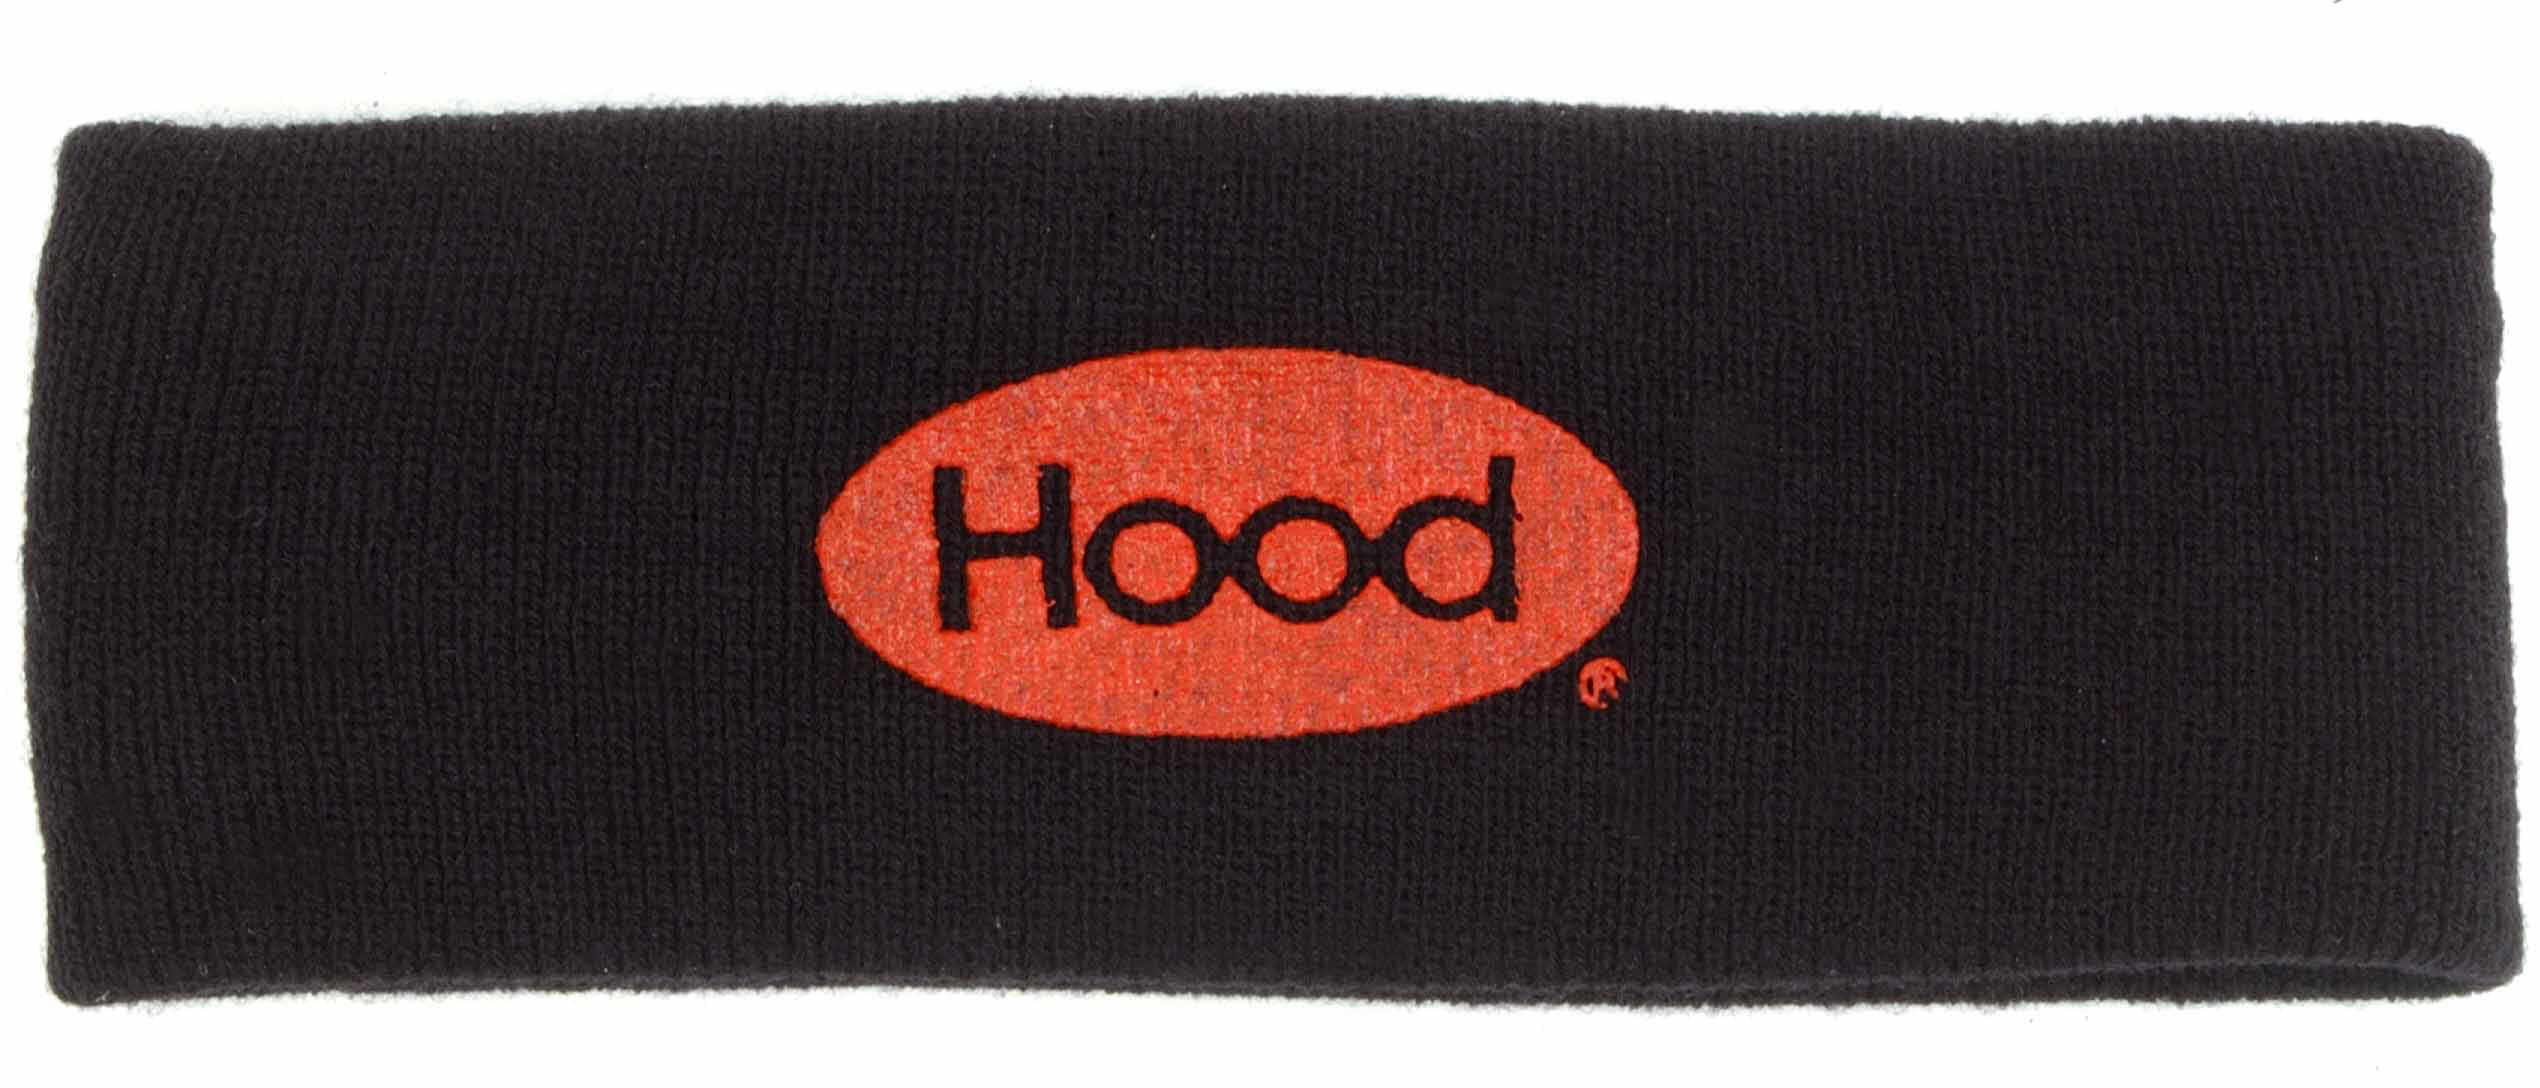 Picture of Acrylic Knit Headband, Promotional Logo Acrylic Knit Headband